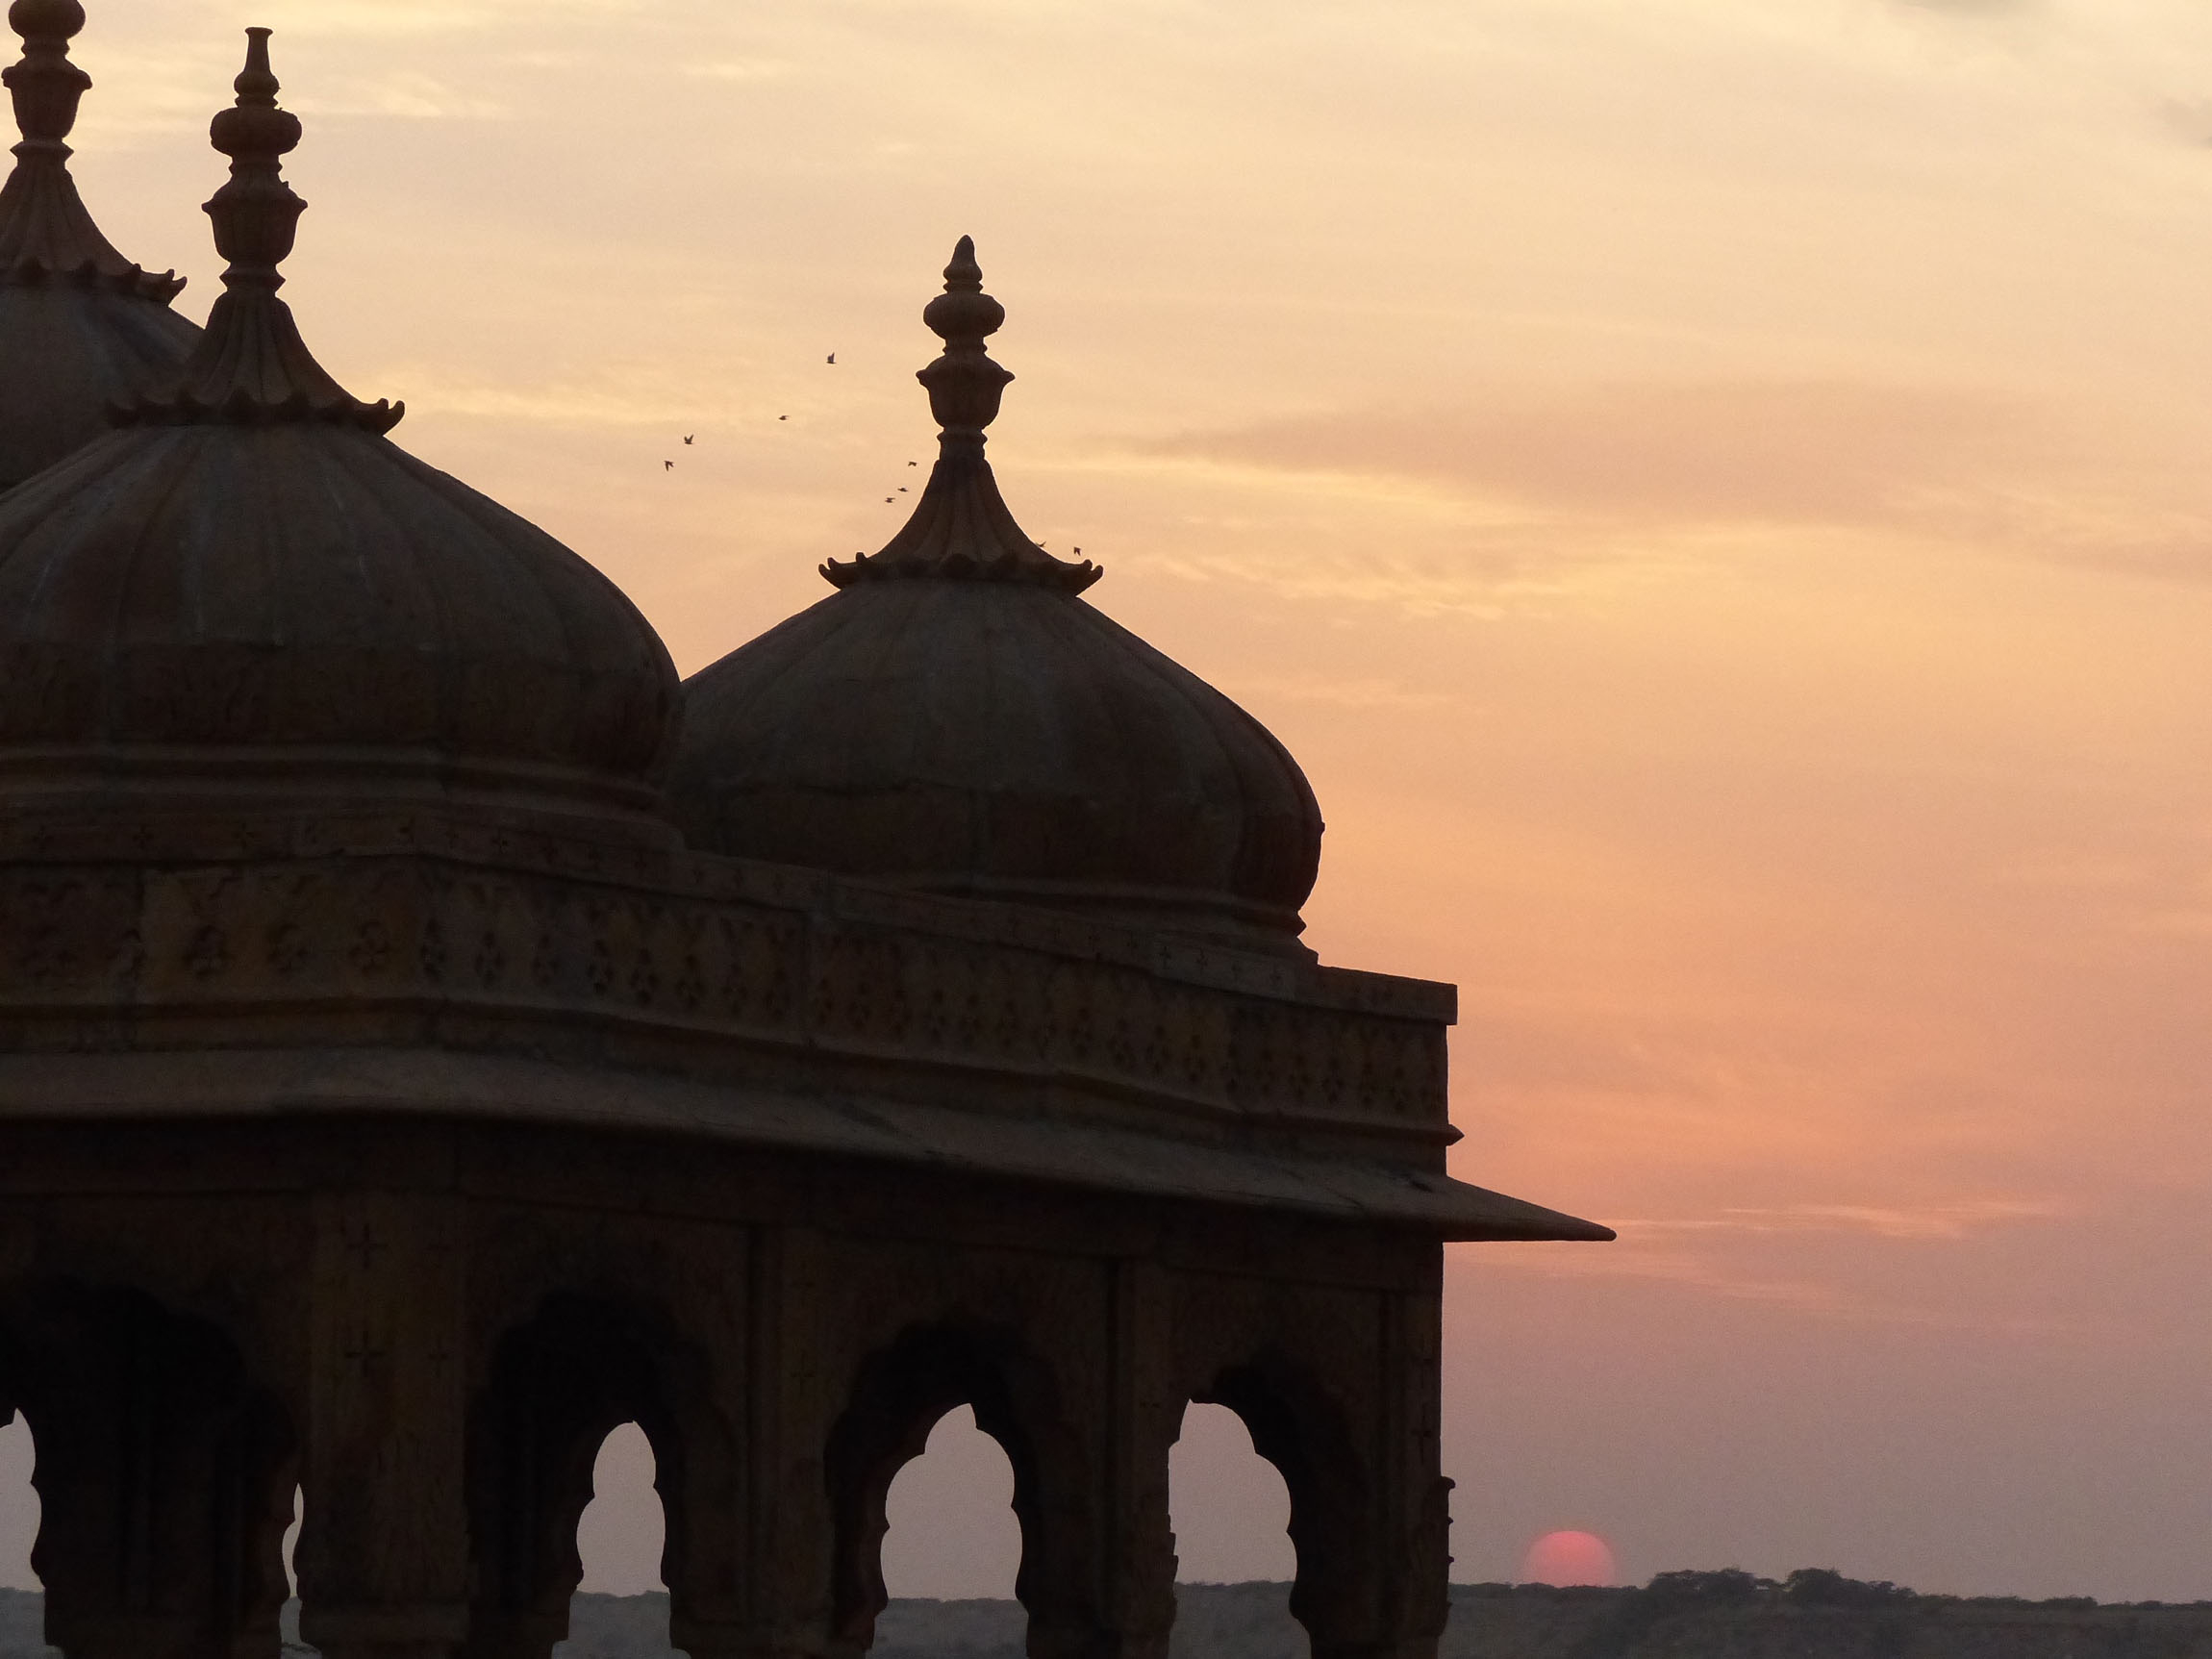 Sunset with silhouetted domes